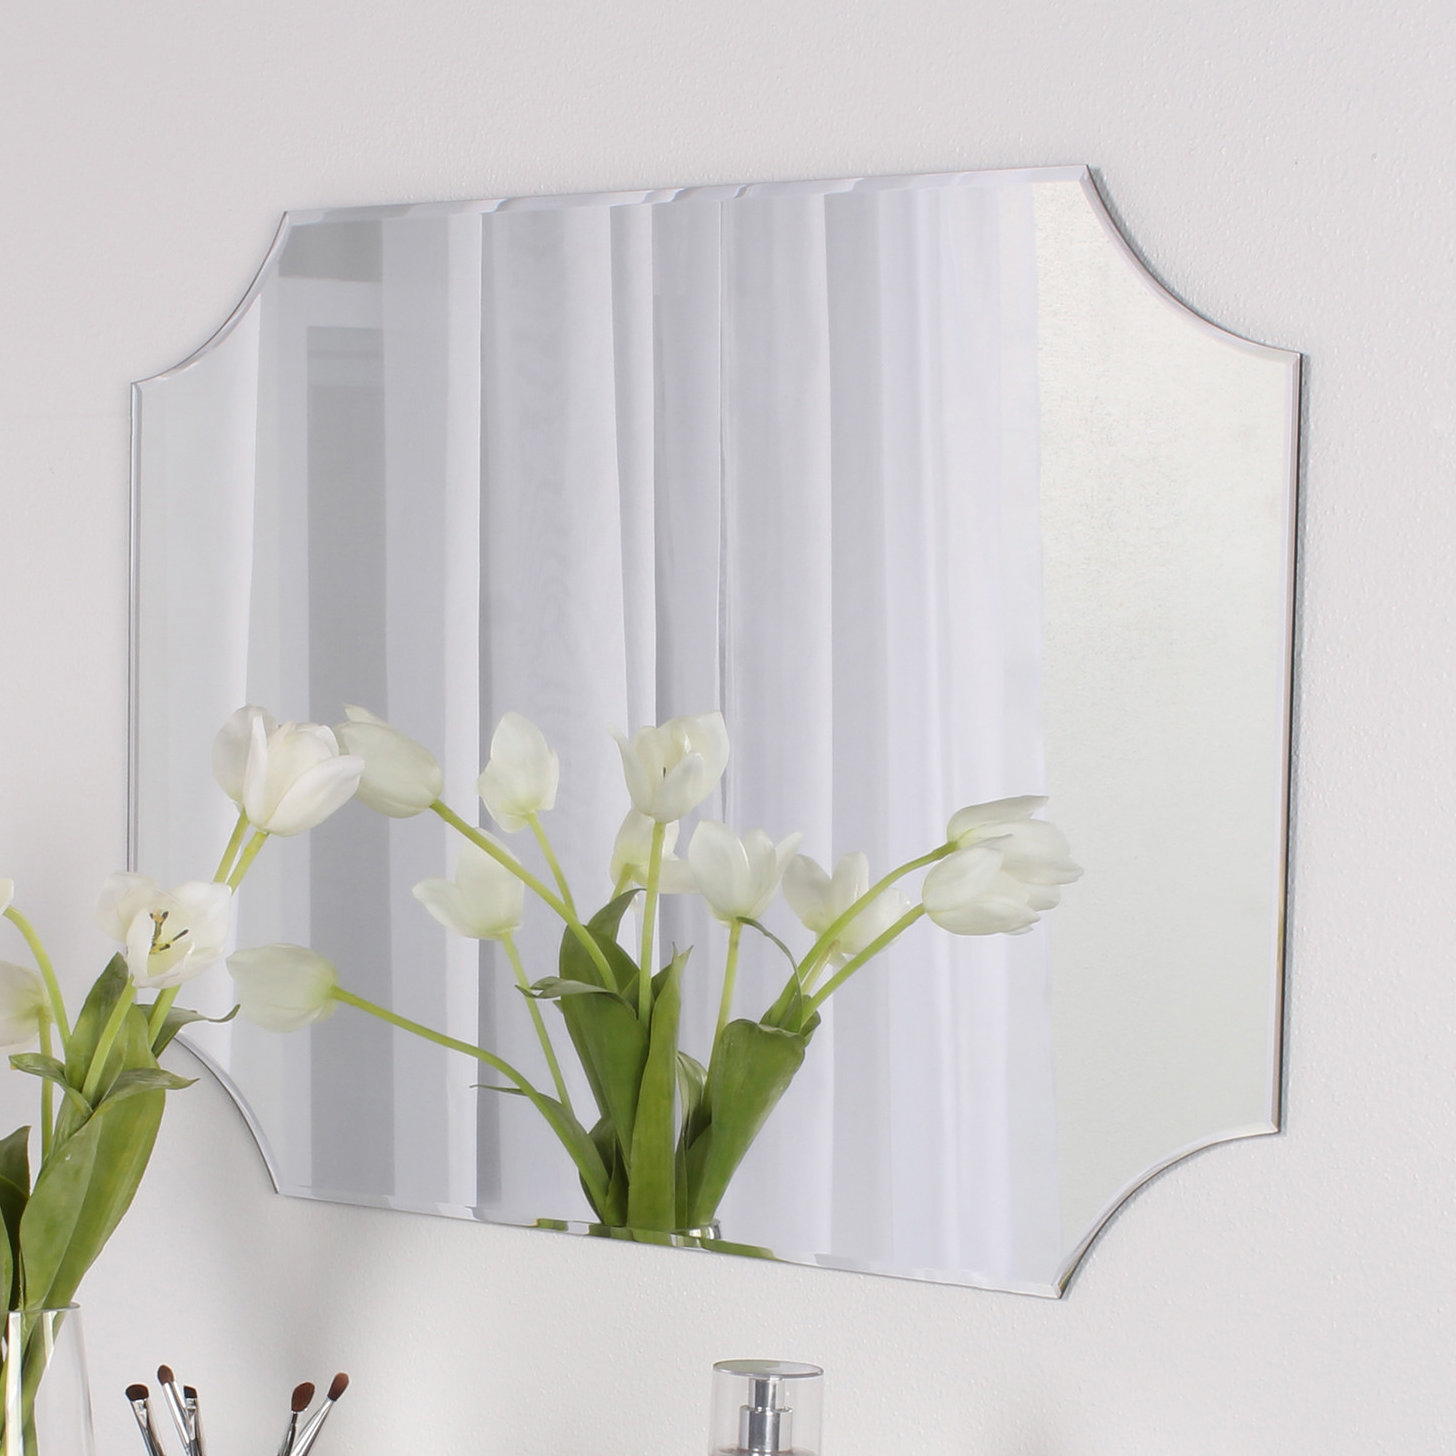 Newest Reign Frameless Oval Scalloped Beveled Wall Mirrors With Regard To Reign Frameless Rectangle Scalloped Beveled Wall Mirror (View 11 of 20)